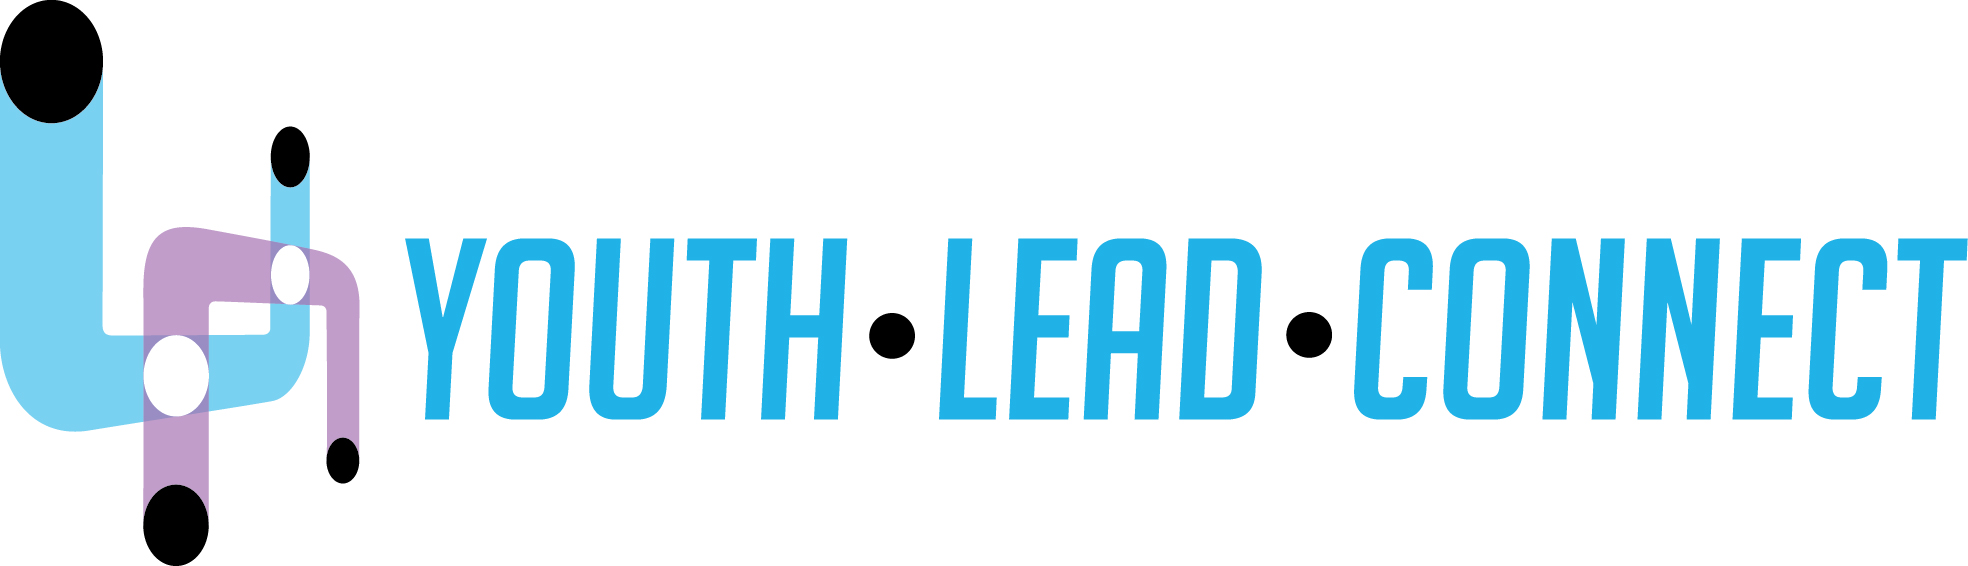 Youth lead connect logo